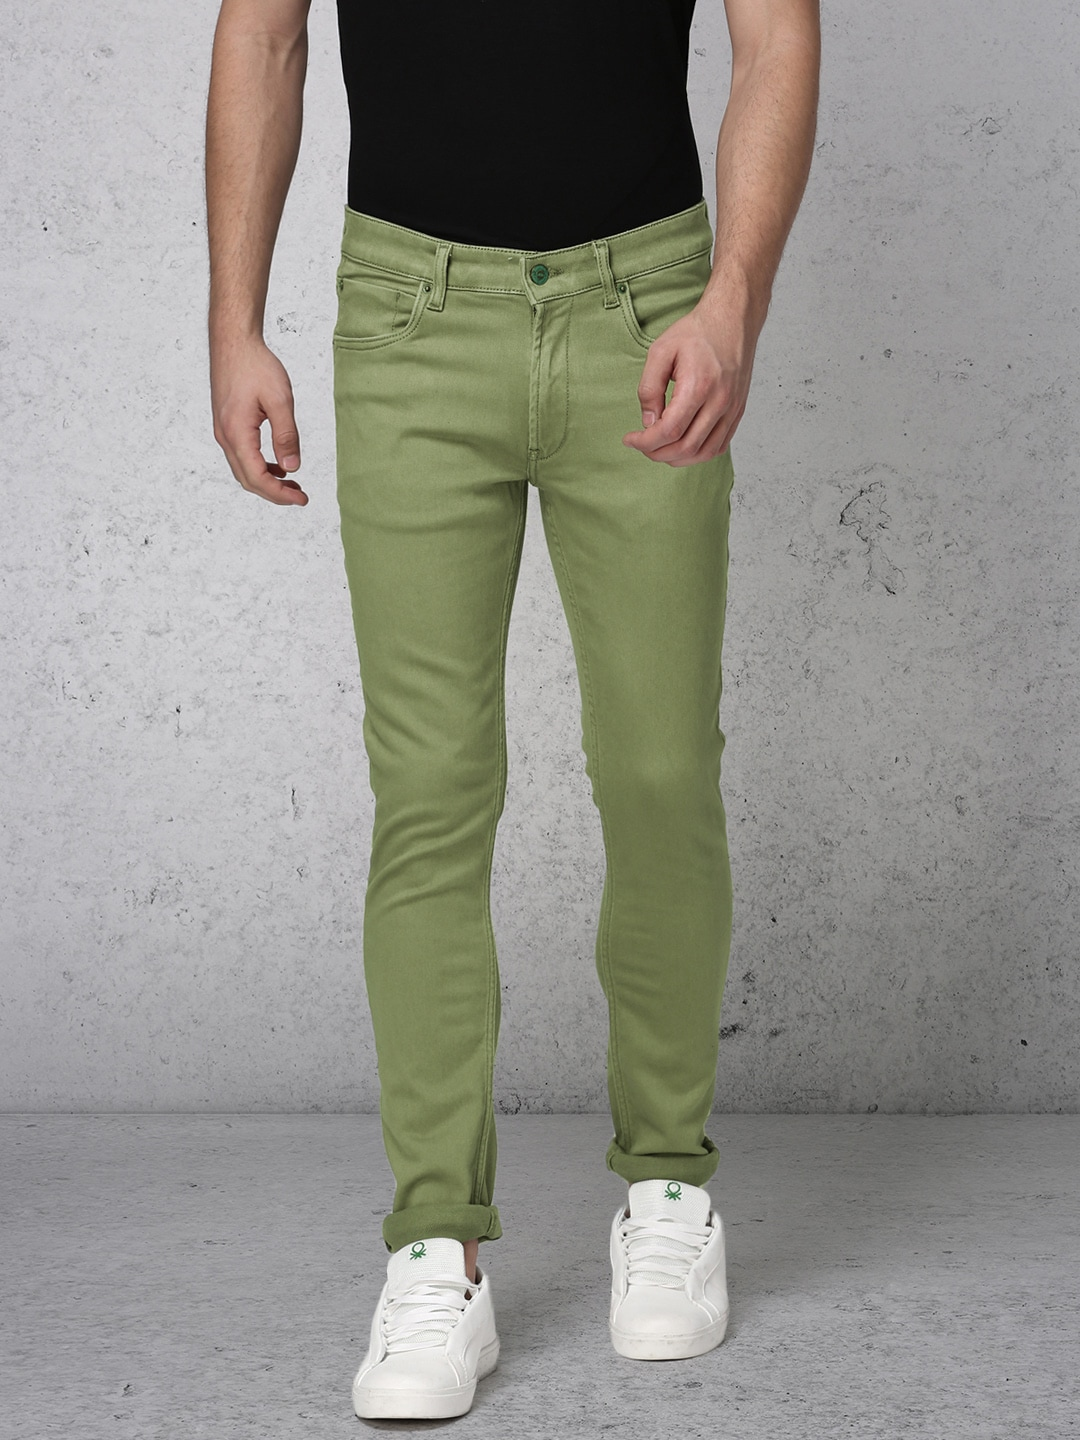 Ecko Unltd Men Olive Green Super Slim Fit Mid-Rise Clean Look Stretchable Jeans image